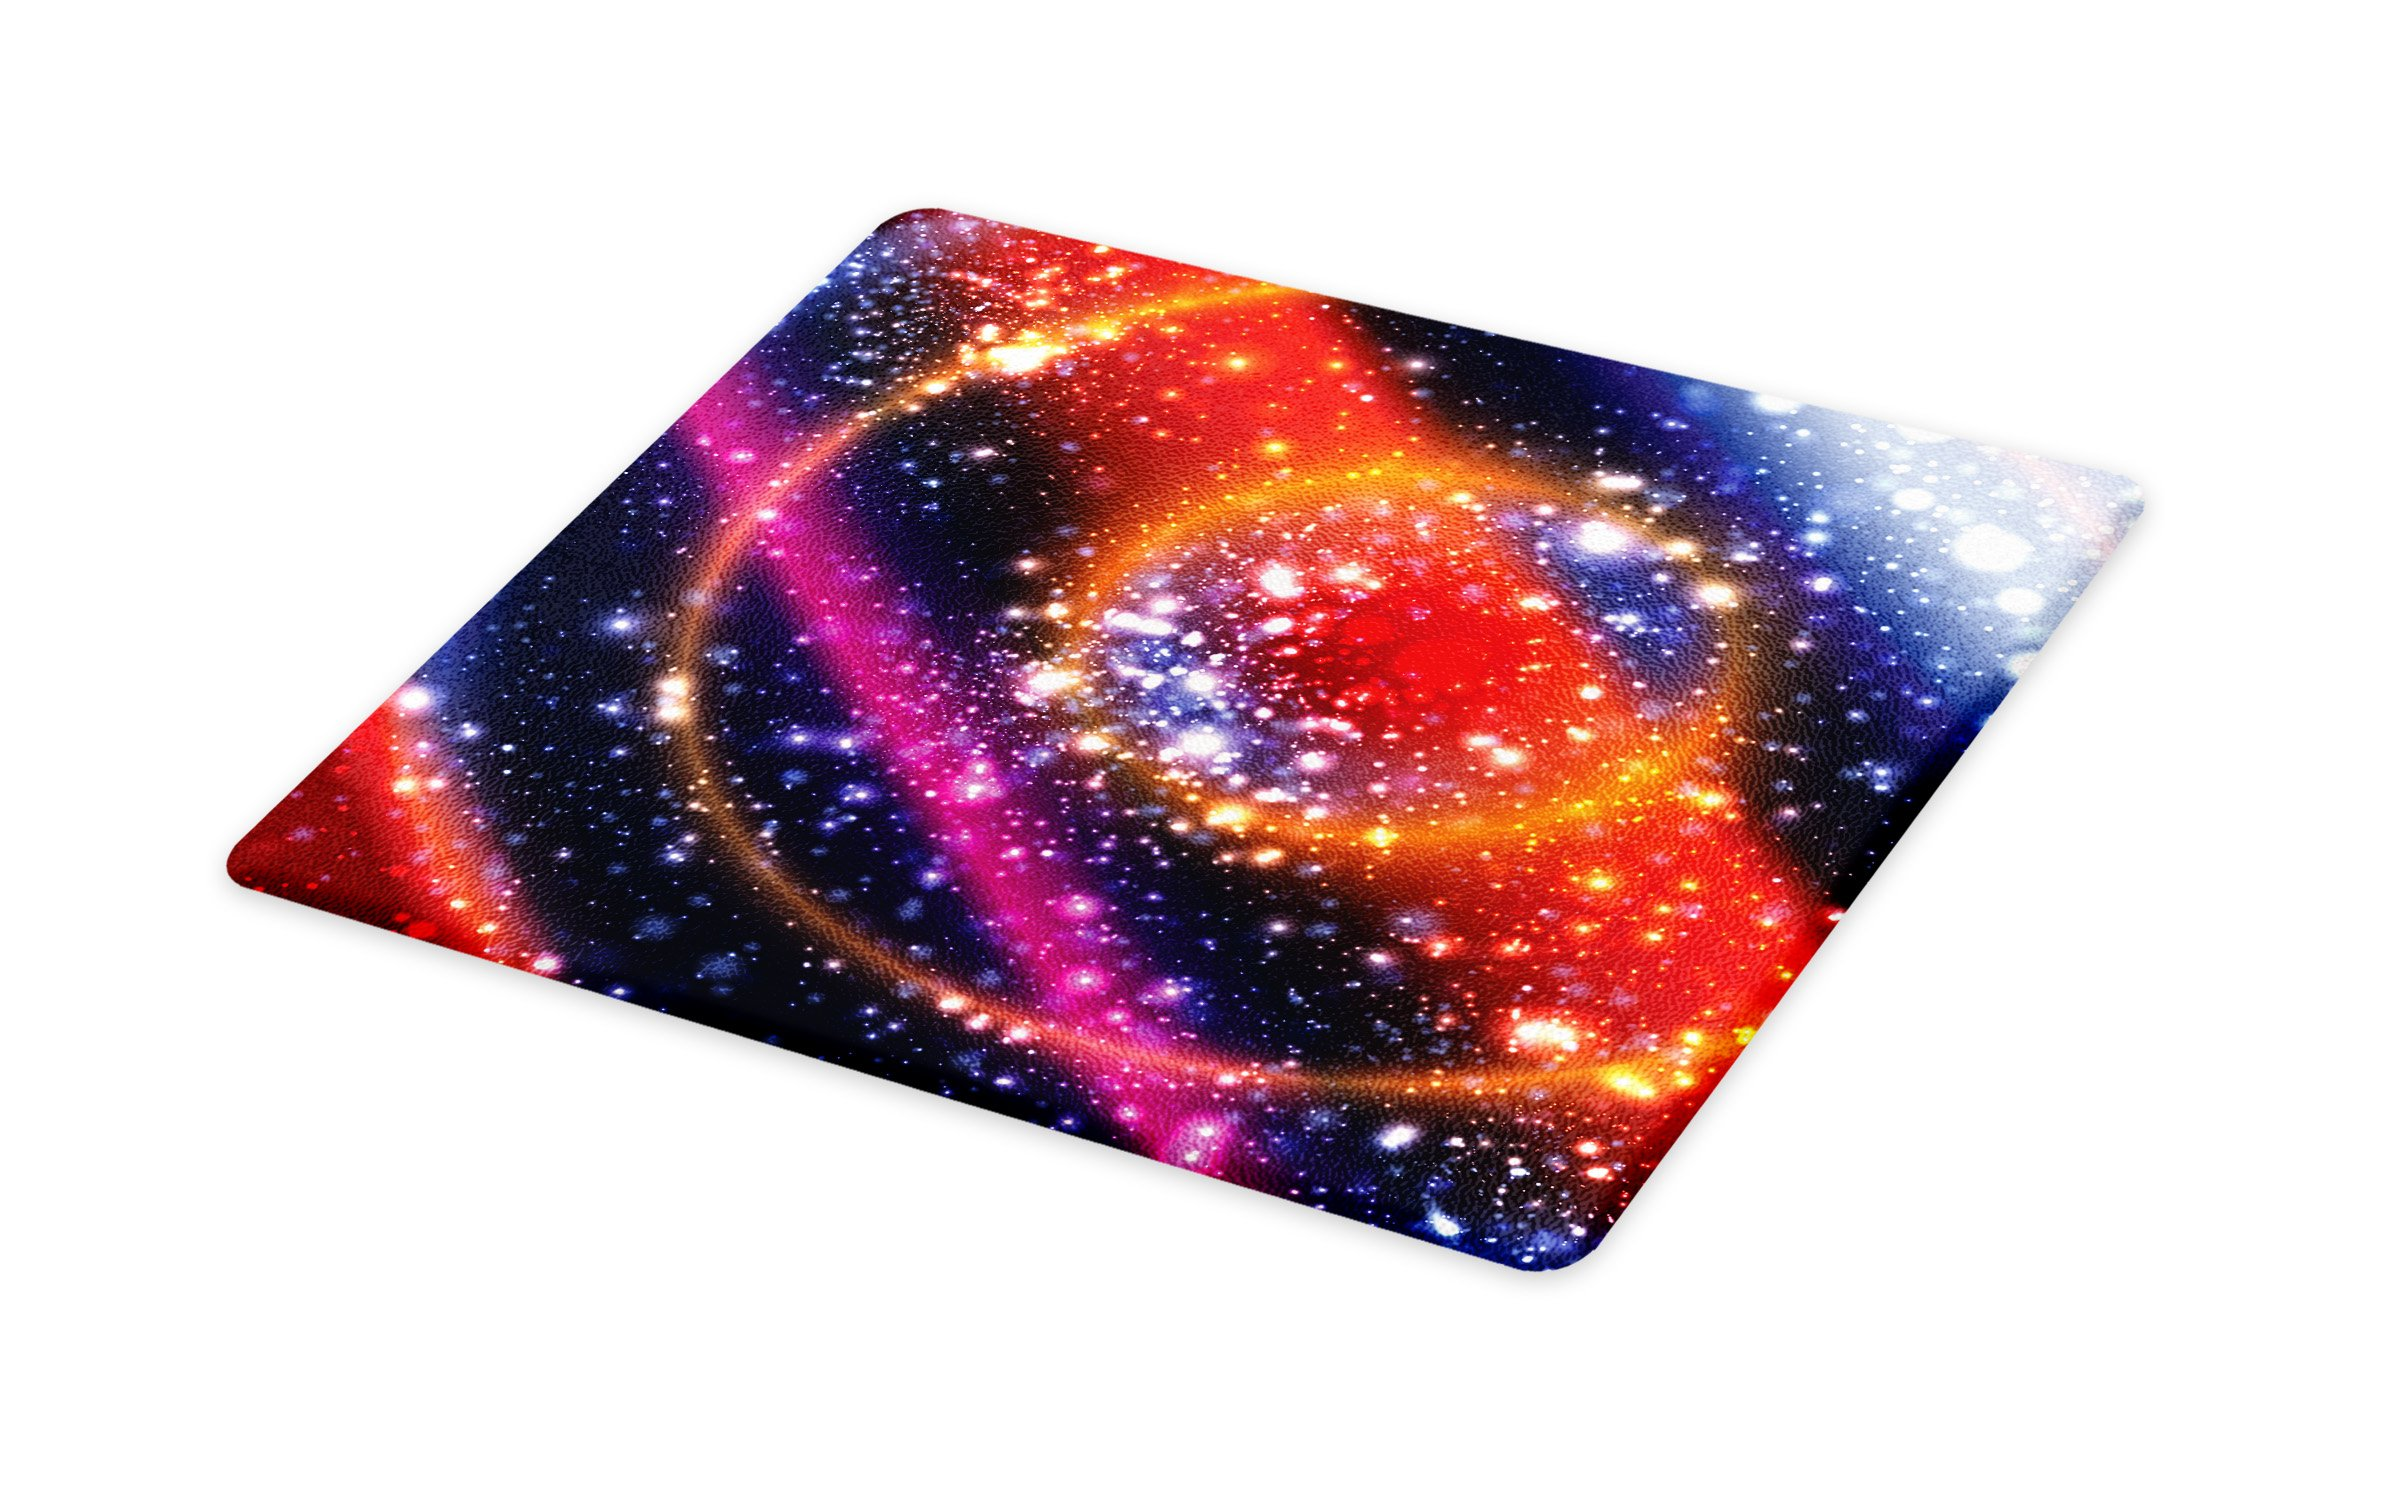 Ambesonne Space Cutting Board, Apocalyptic Cosmos Design Circular Striped Vibrant Galaxy Mystic Sky Solar System, Decorative Tempered Glass Cutting and Serving Board, Large Size, Multicolor